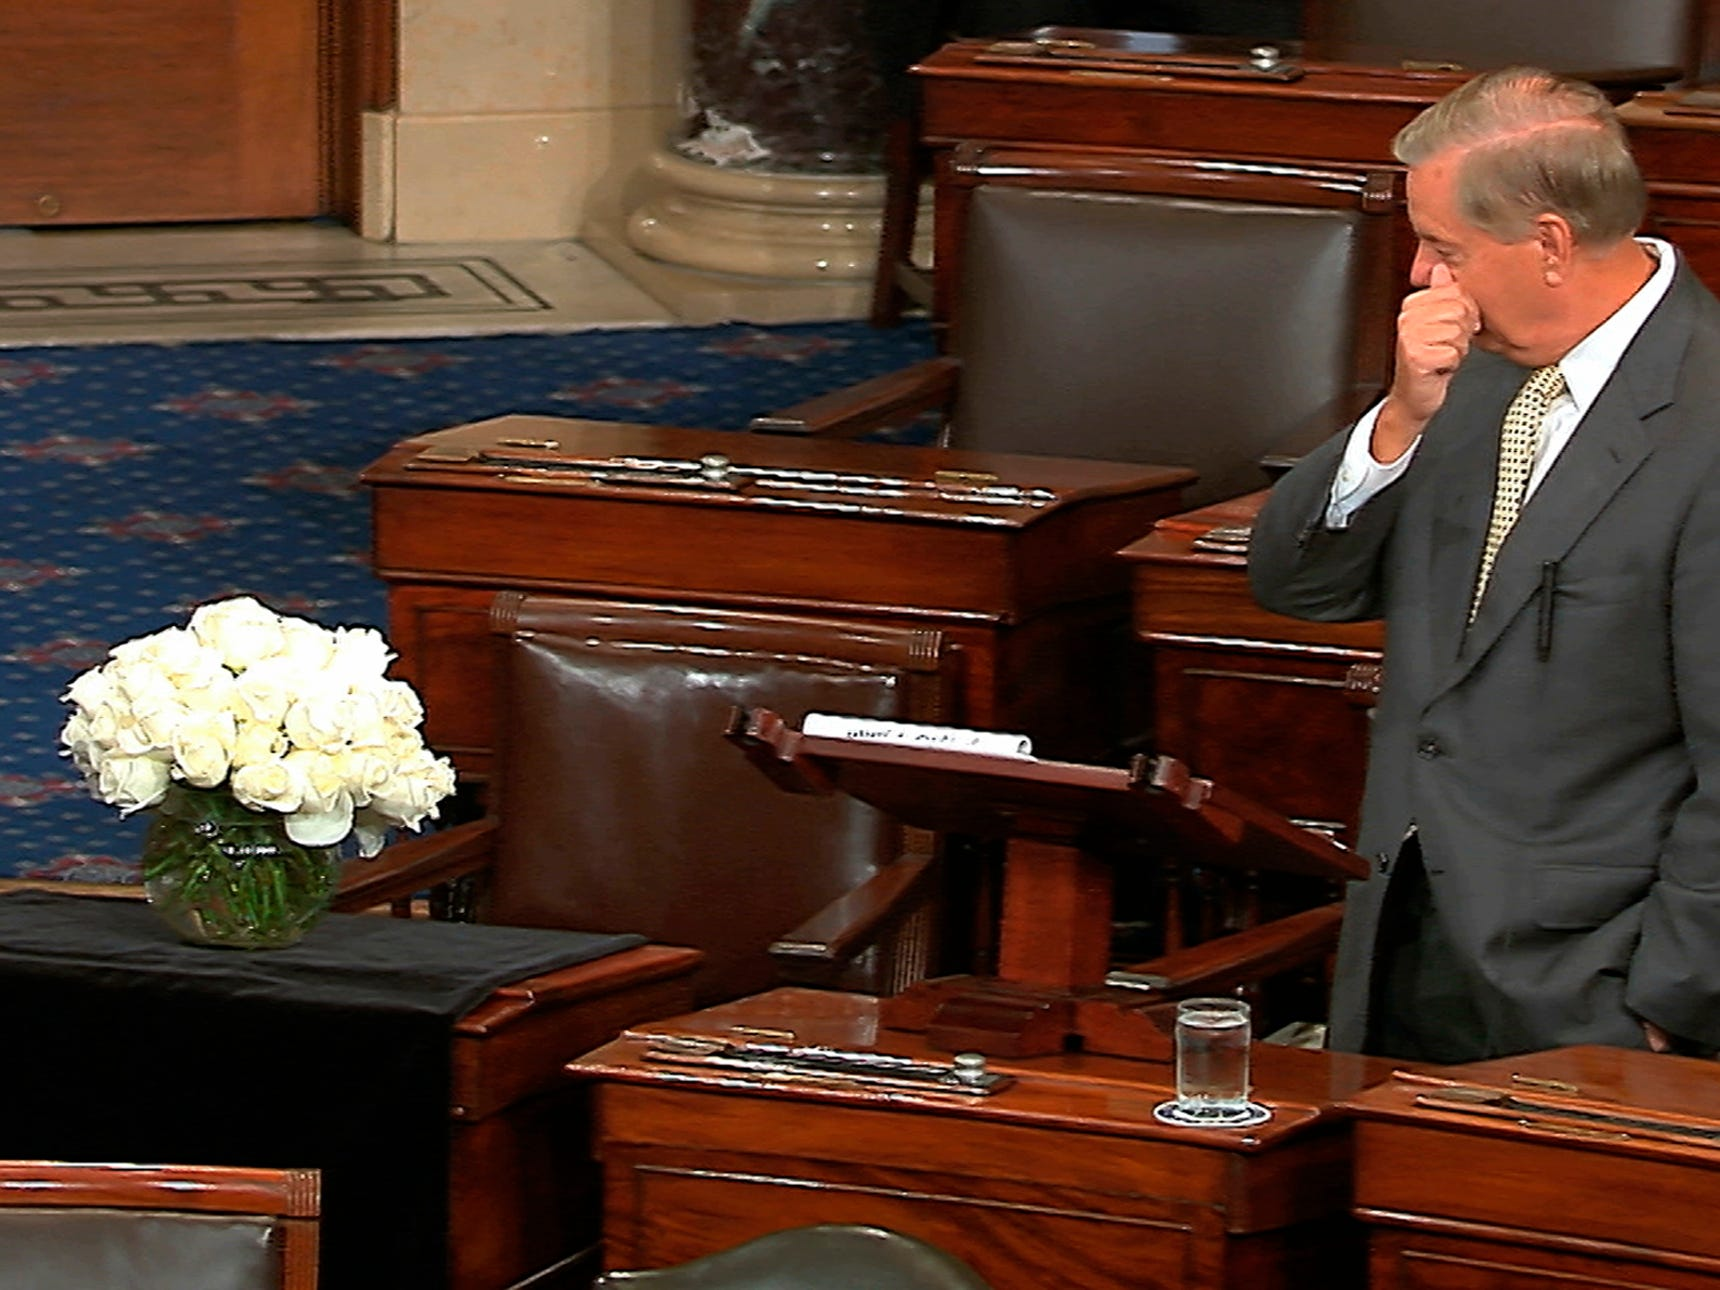 In this image from Senate Television, Sen. Lindsey Graham, R-S.C., pauses as he speaks on the Senate floor at the Capitol in Washington, Aug. 28, 2018, next to the desk of Sen. John McCain draped in black with a bowl of white roses sitting on it.